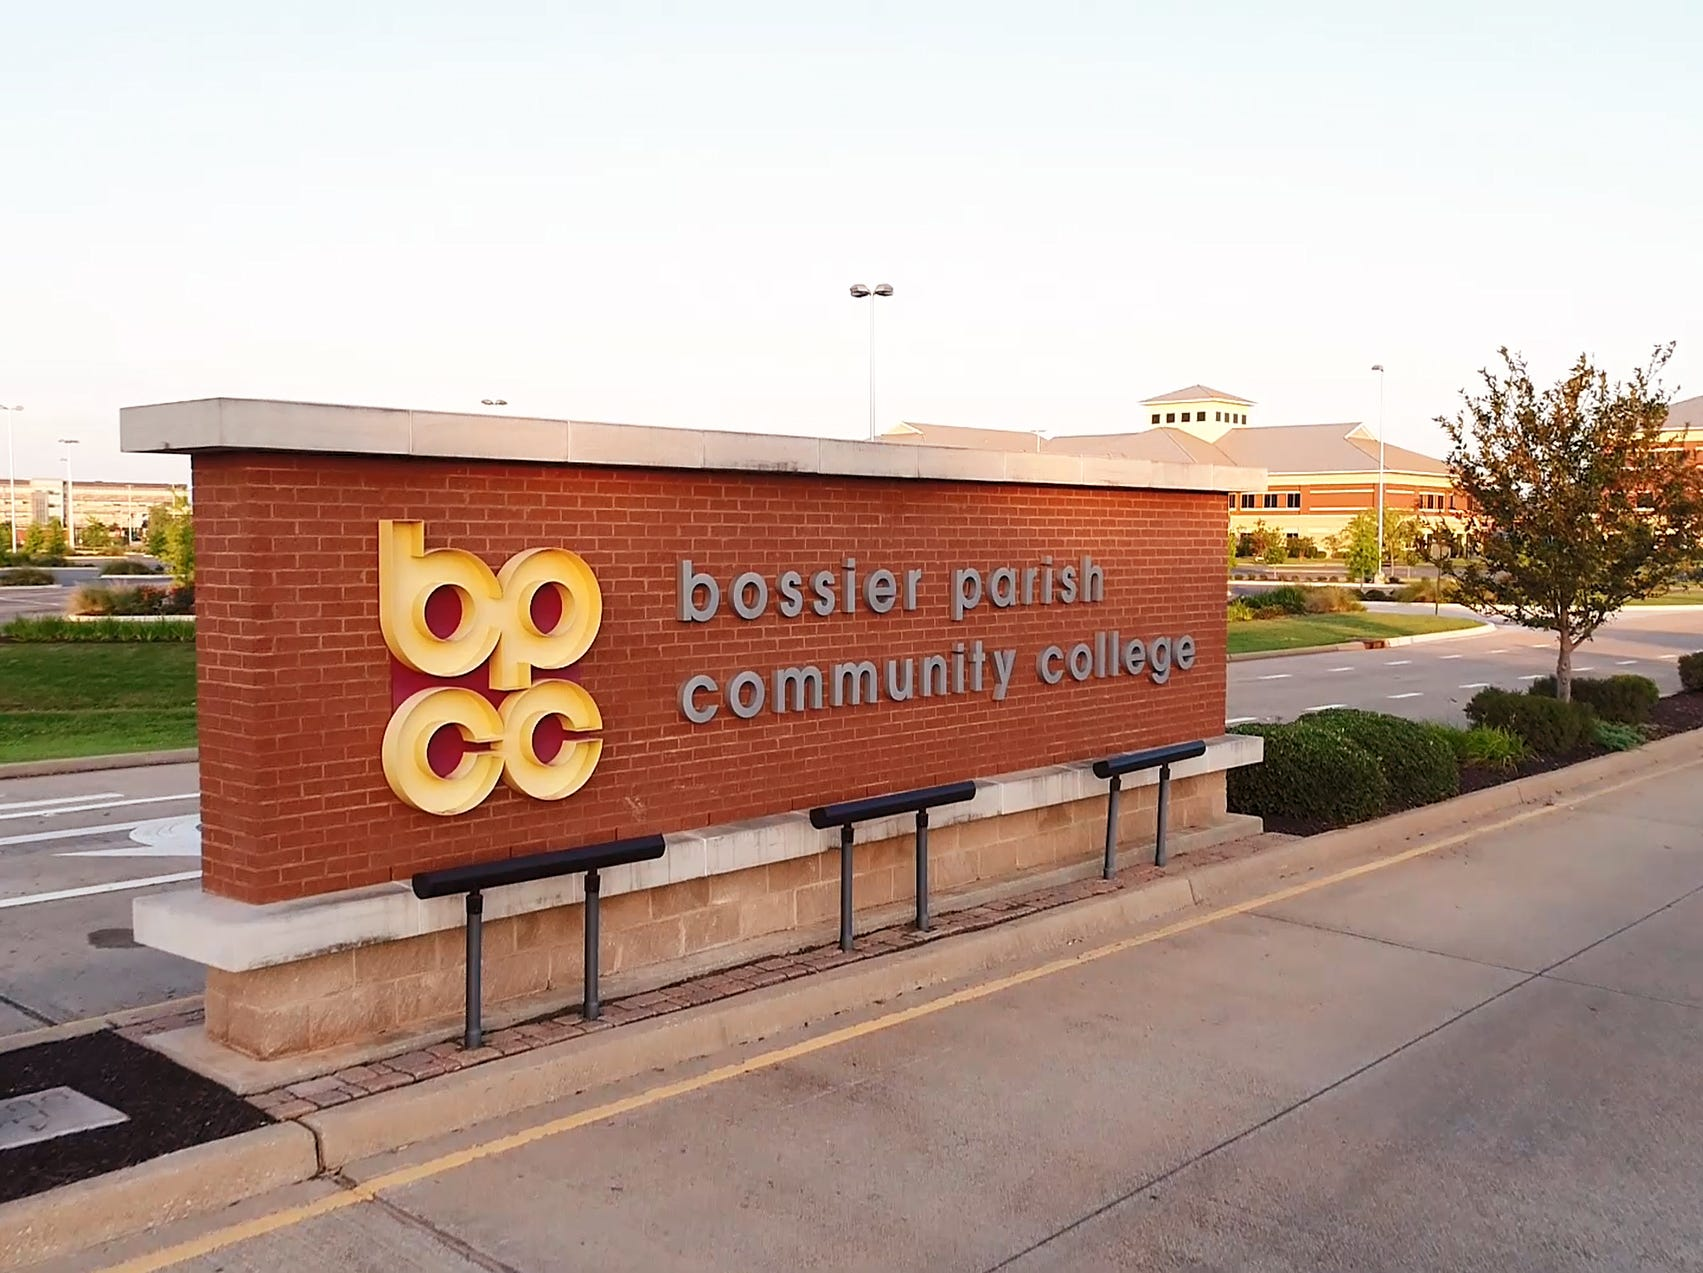 Contest opens to BPCC students pitching business ideas, product, service or invention